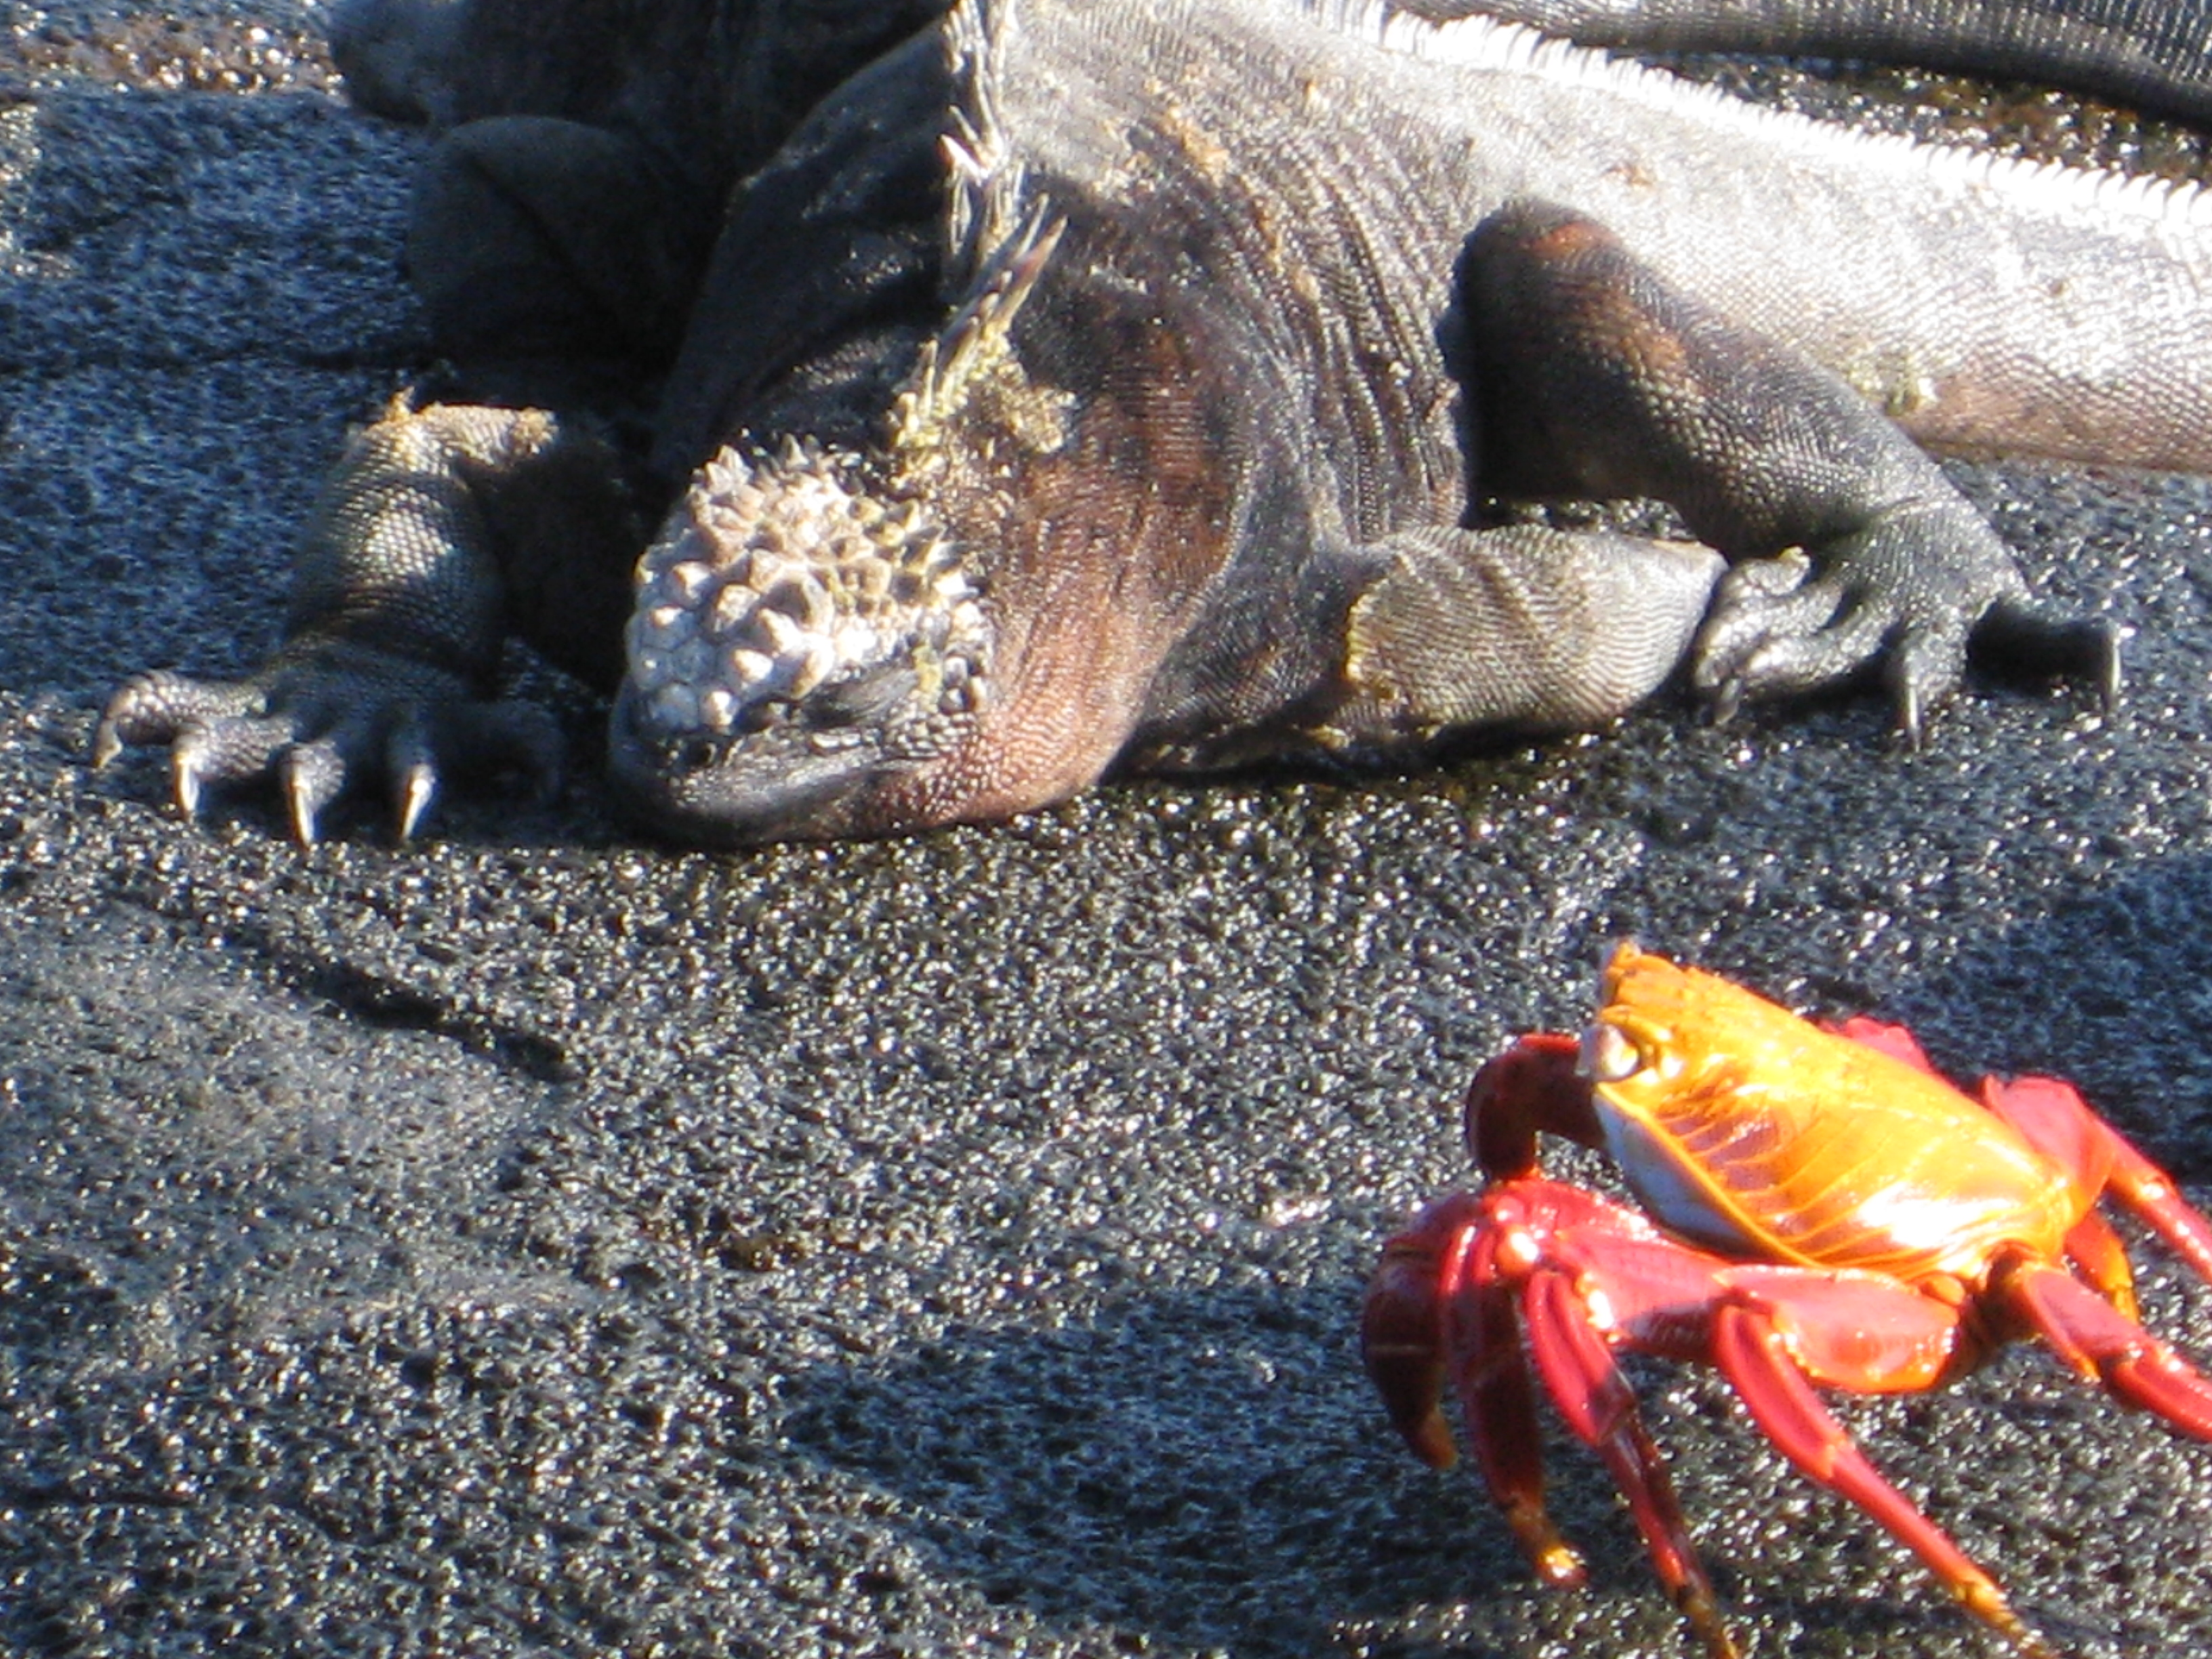 Galapagos marine iguana and Sally LIghtfoot crab